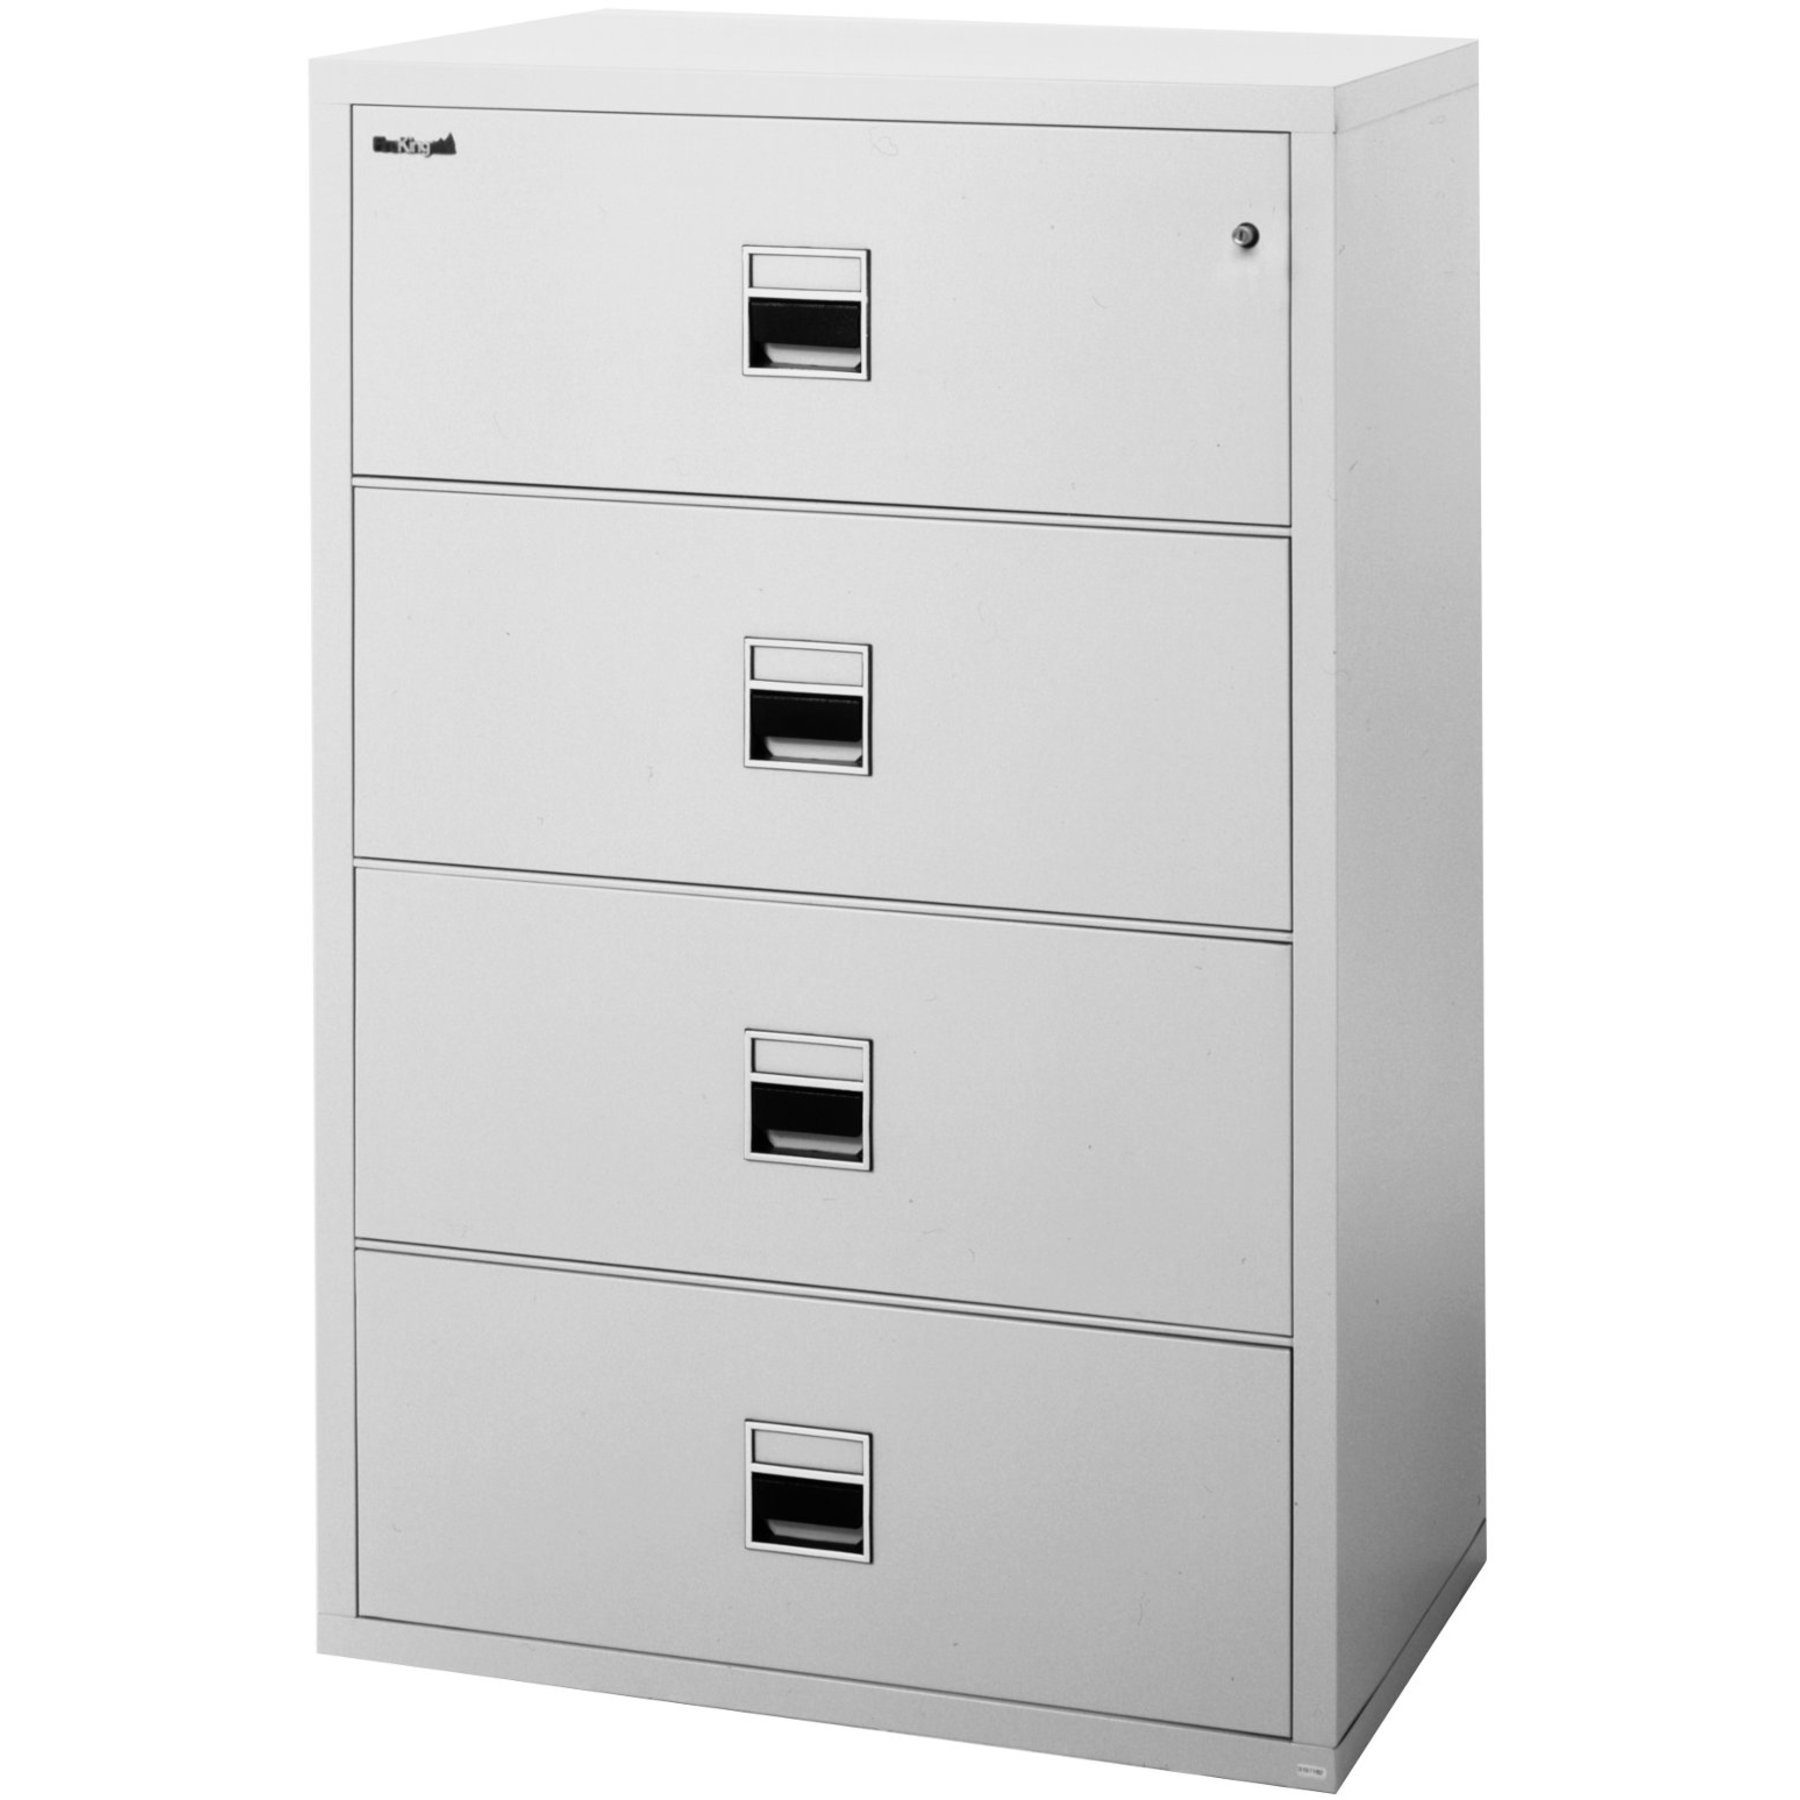 FireKing Lateral MLT4 Fire Resistant File Cabinet